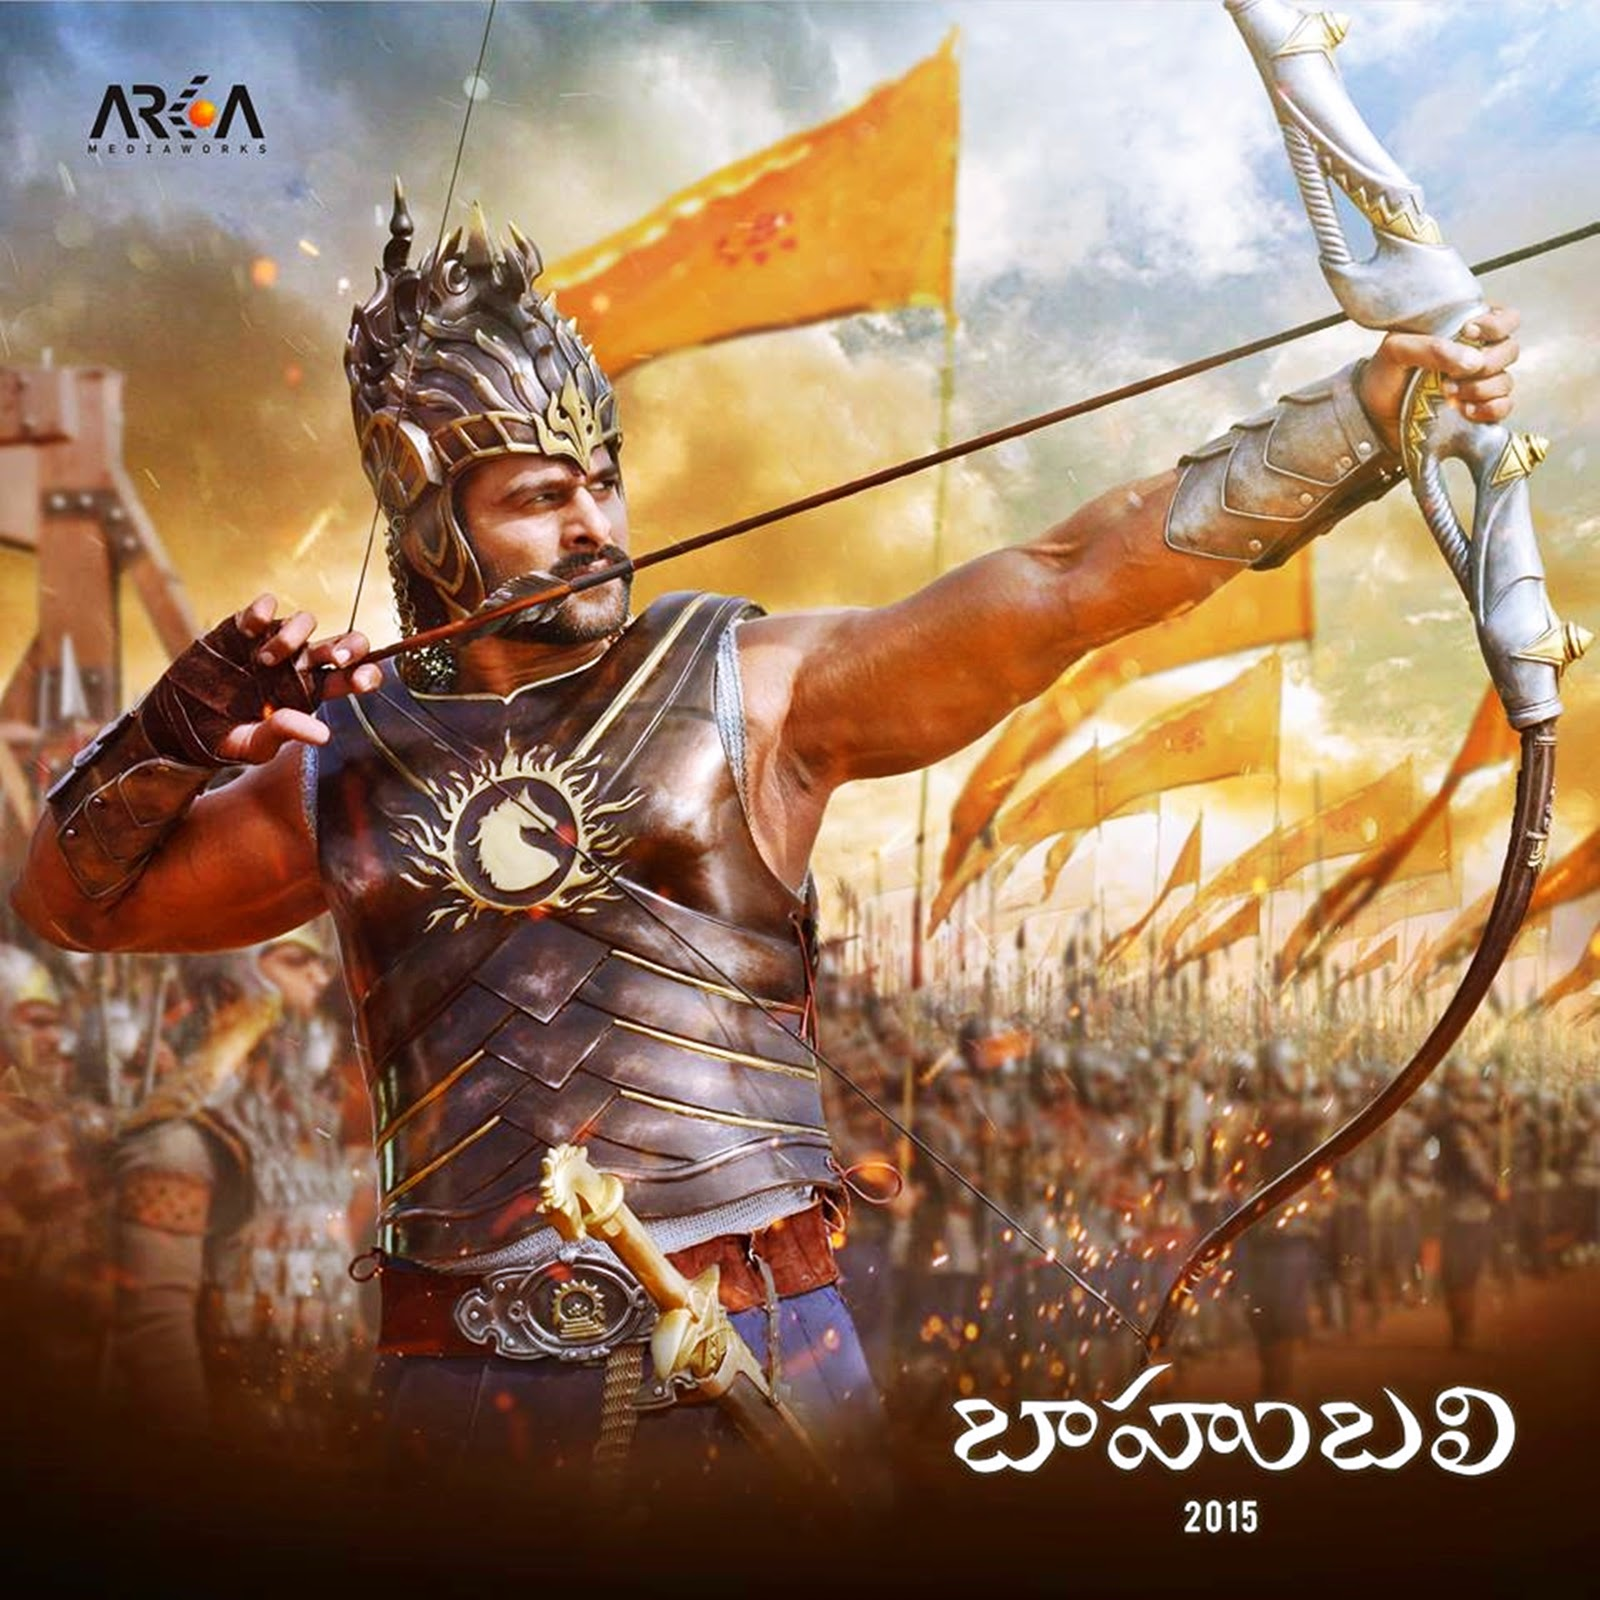 baahubali collection